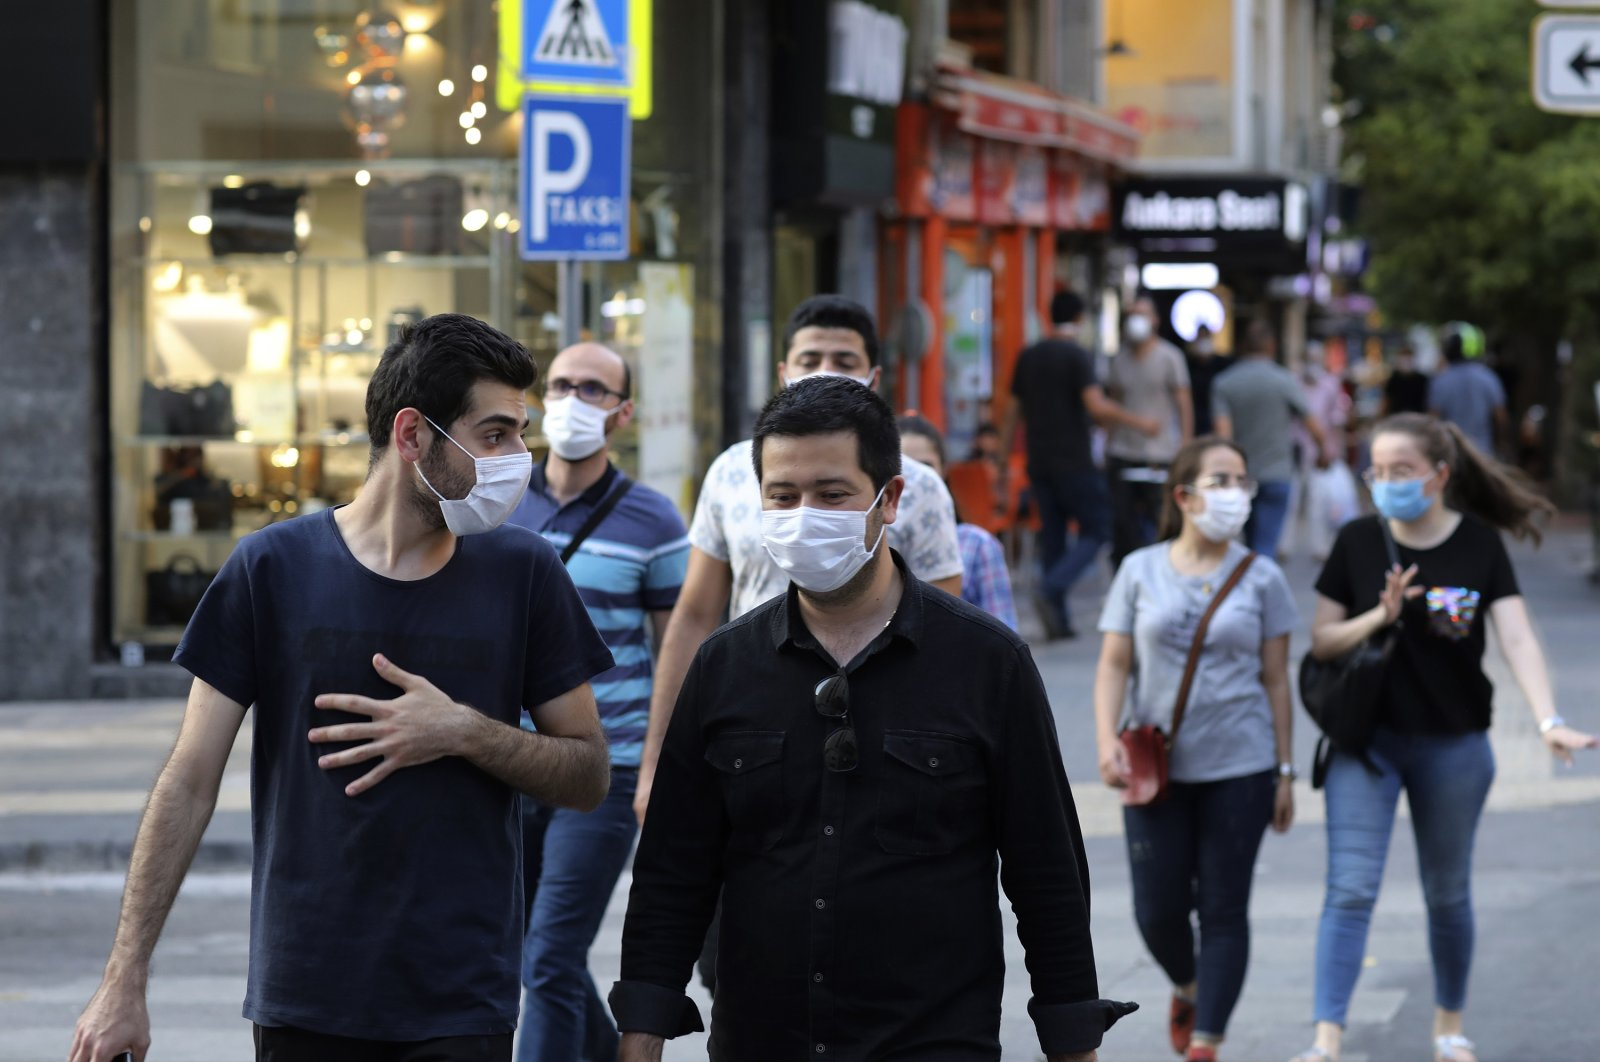 People wearing face masks to protect against the spread of coronavirus, walk in Ankara, Turkey, Thursday, Aug. 6, 2020. Turkey's interior ministry announced new measures Wednesday to curb the spread of COVID-19 as daily confirmed cases peaked above 1,000. (AP Photo)